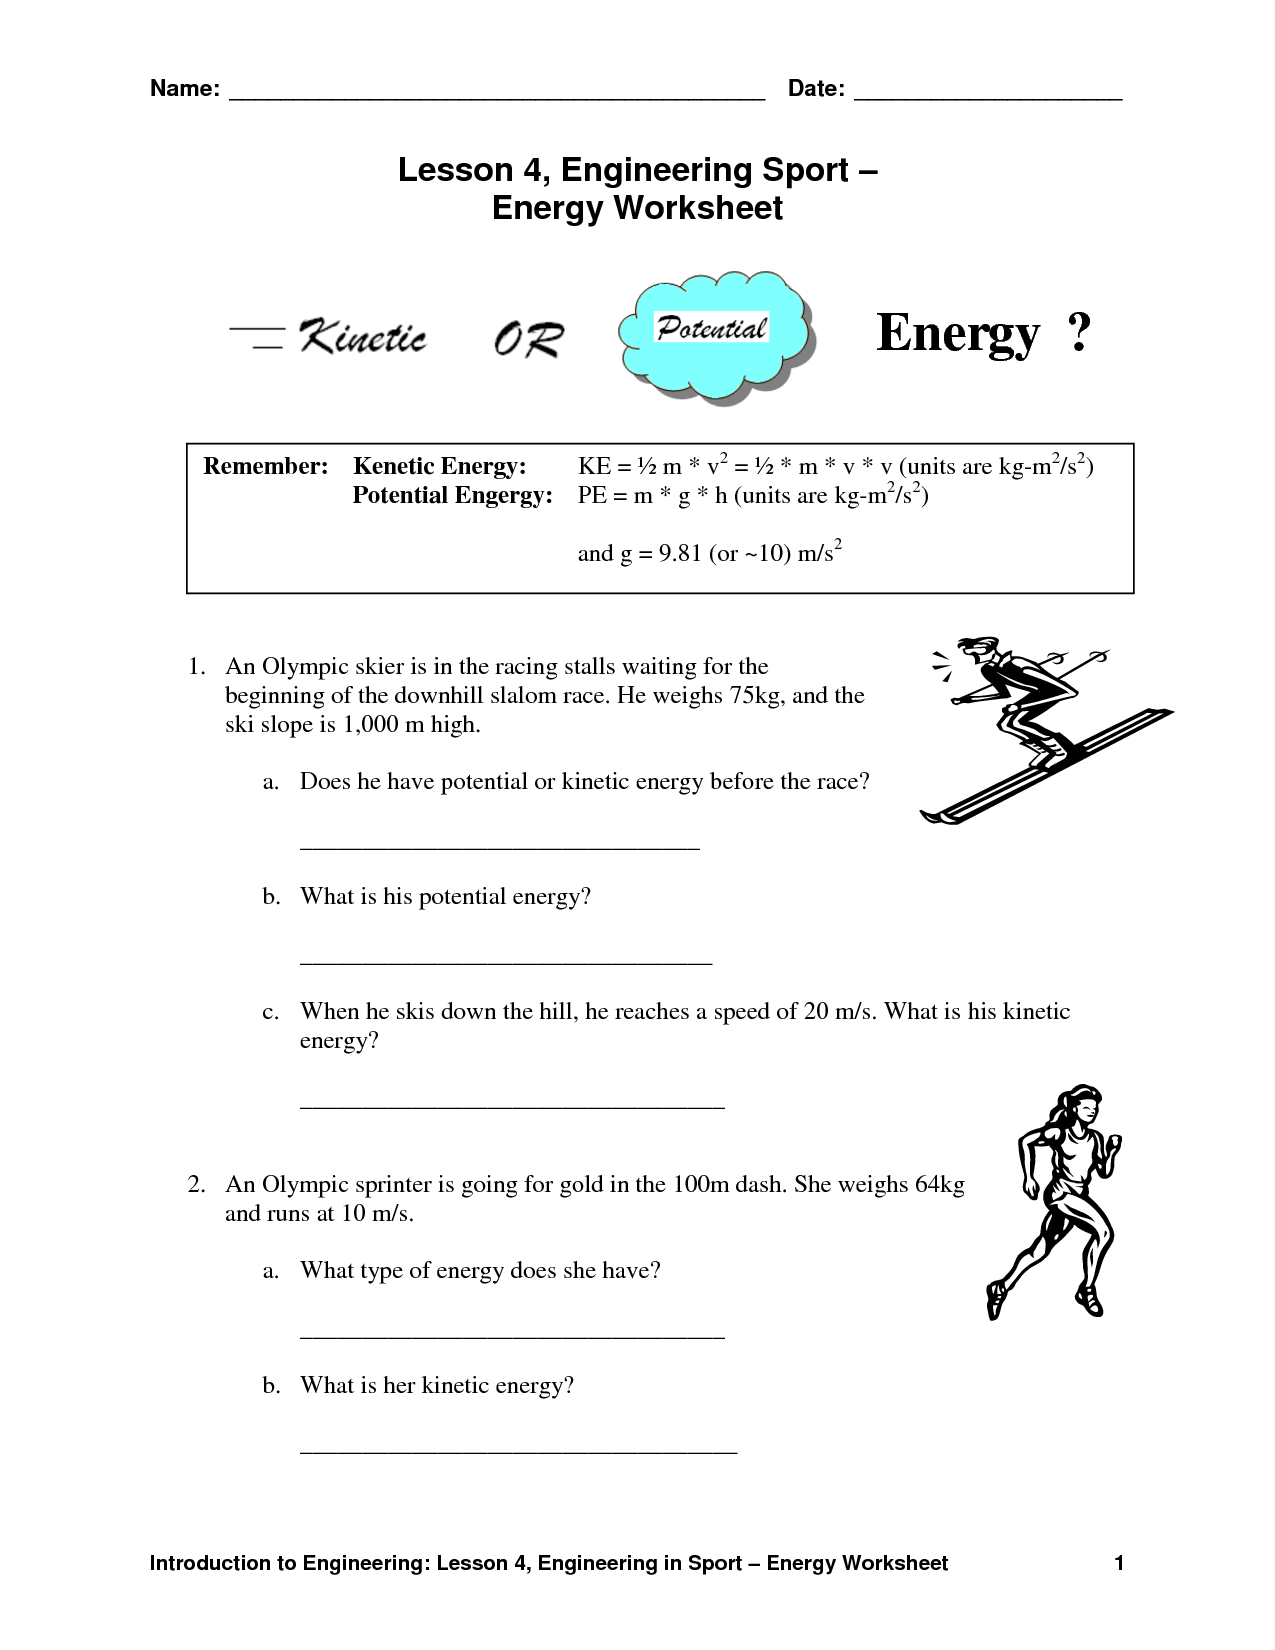 12 Best Images Of Light Energy Worksheets